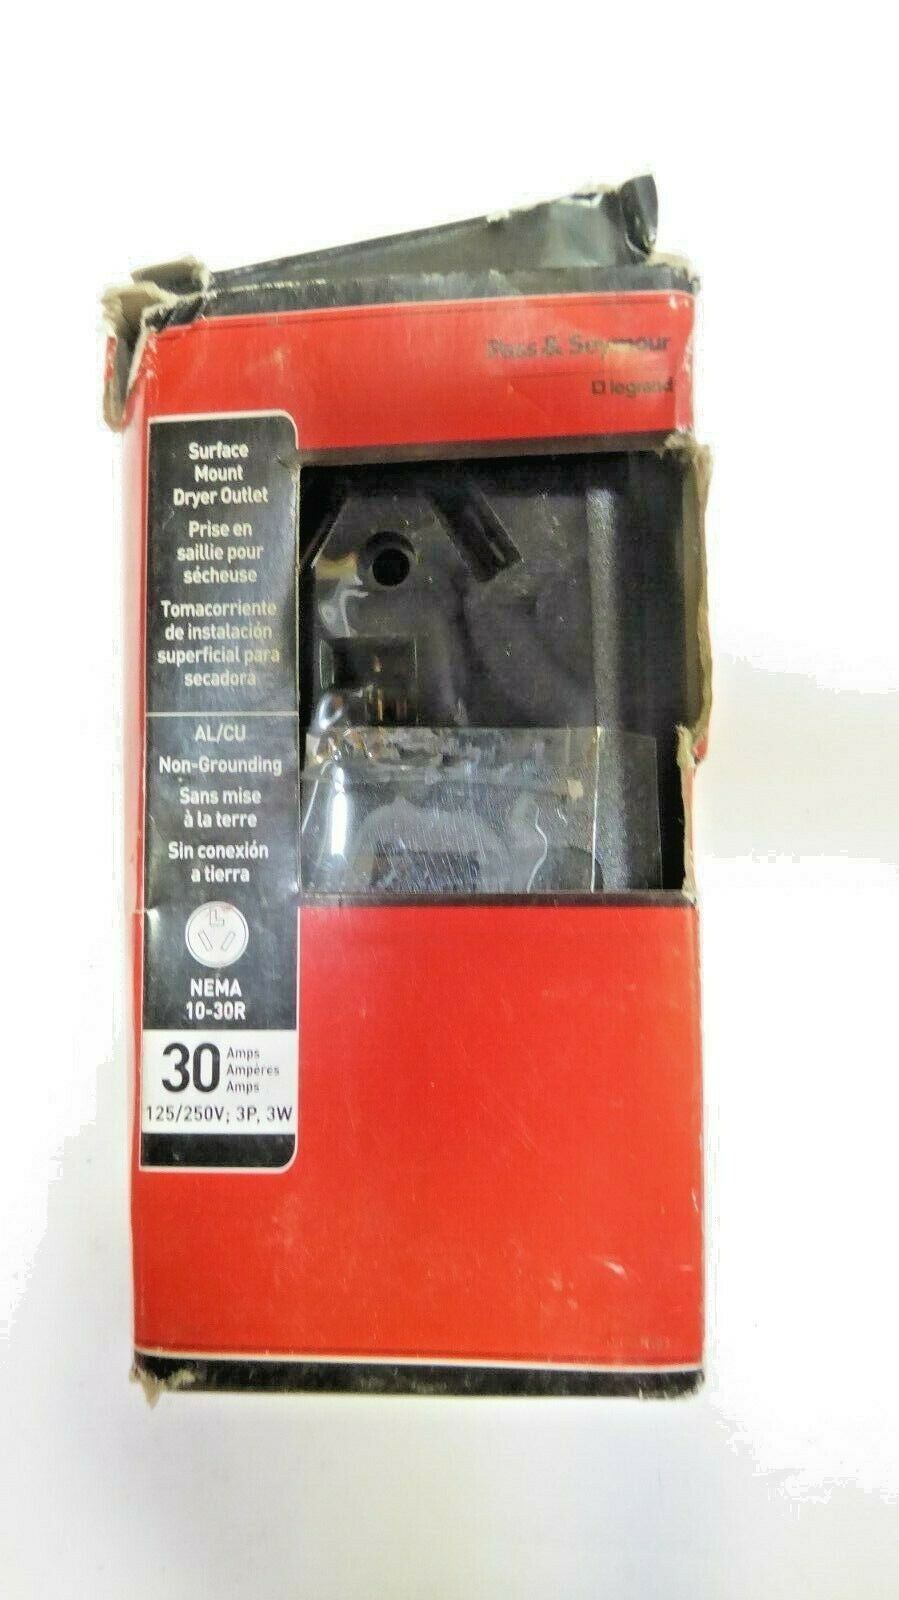 Pass & Seymour Legrand 388CC6 Surface Mount Dryer Outlet Pack of 5 New